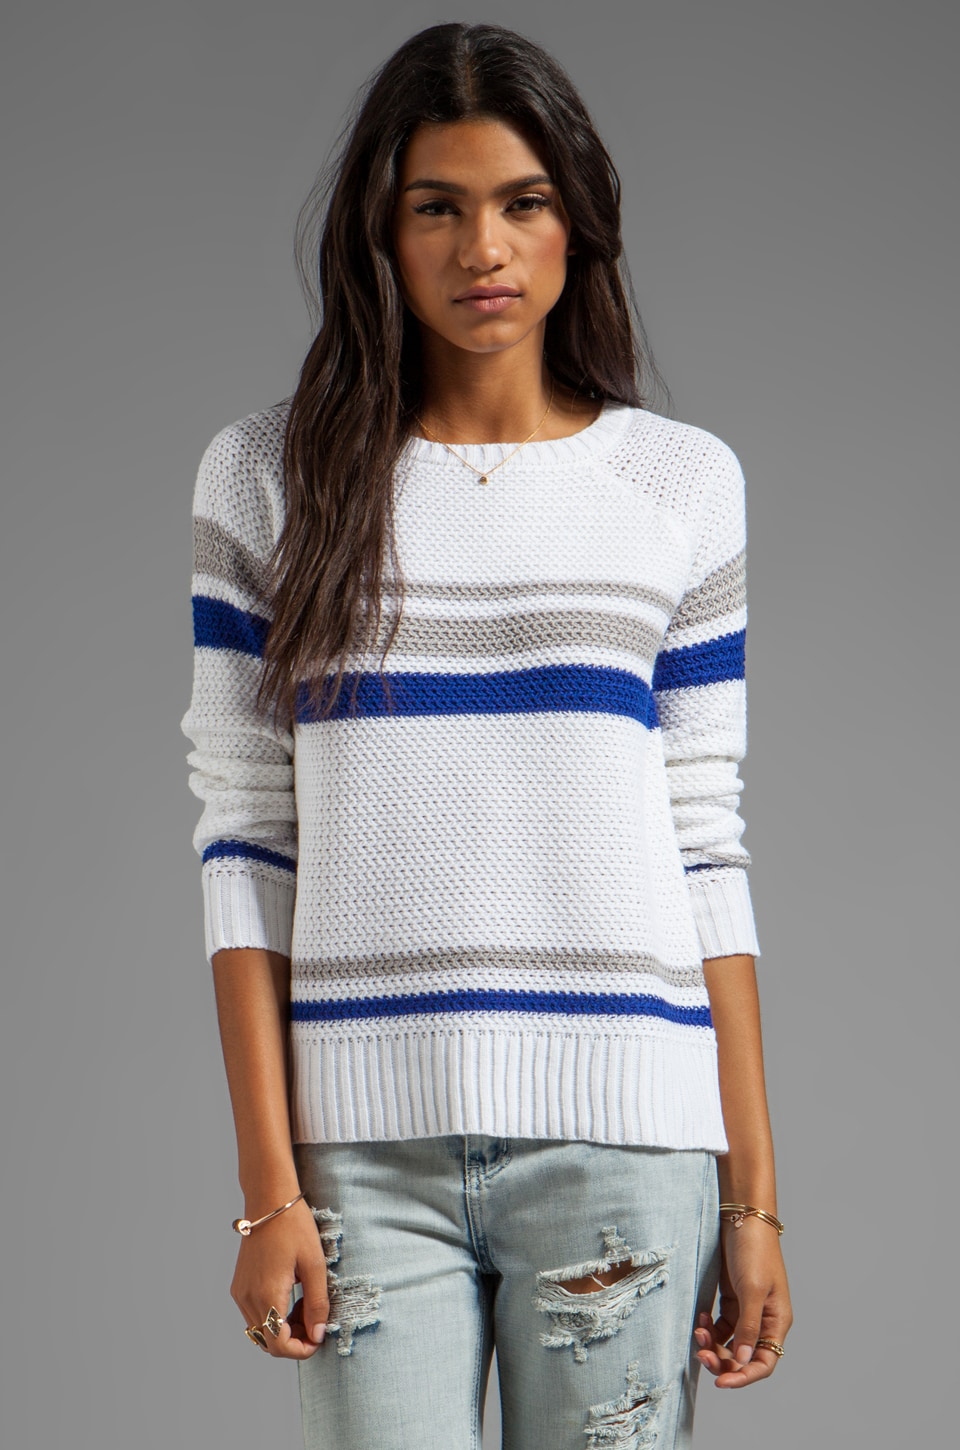 Lucca Couture Striped Sweater in Optic White